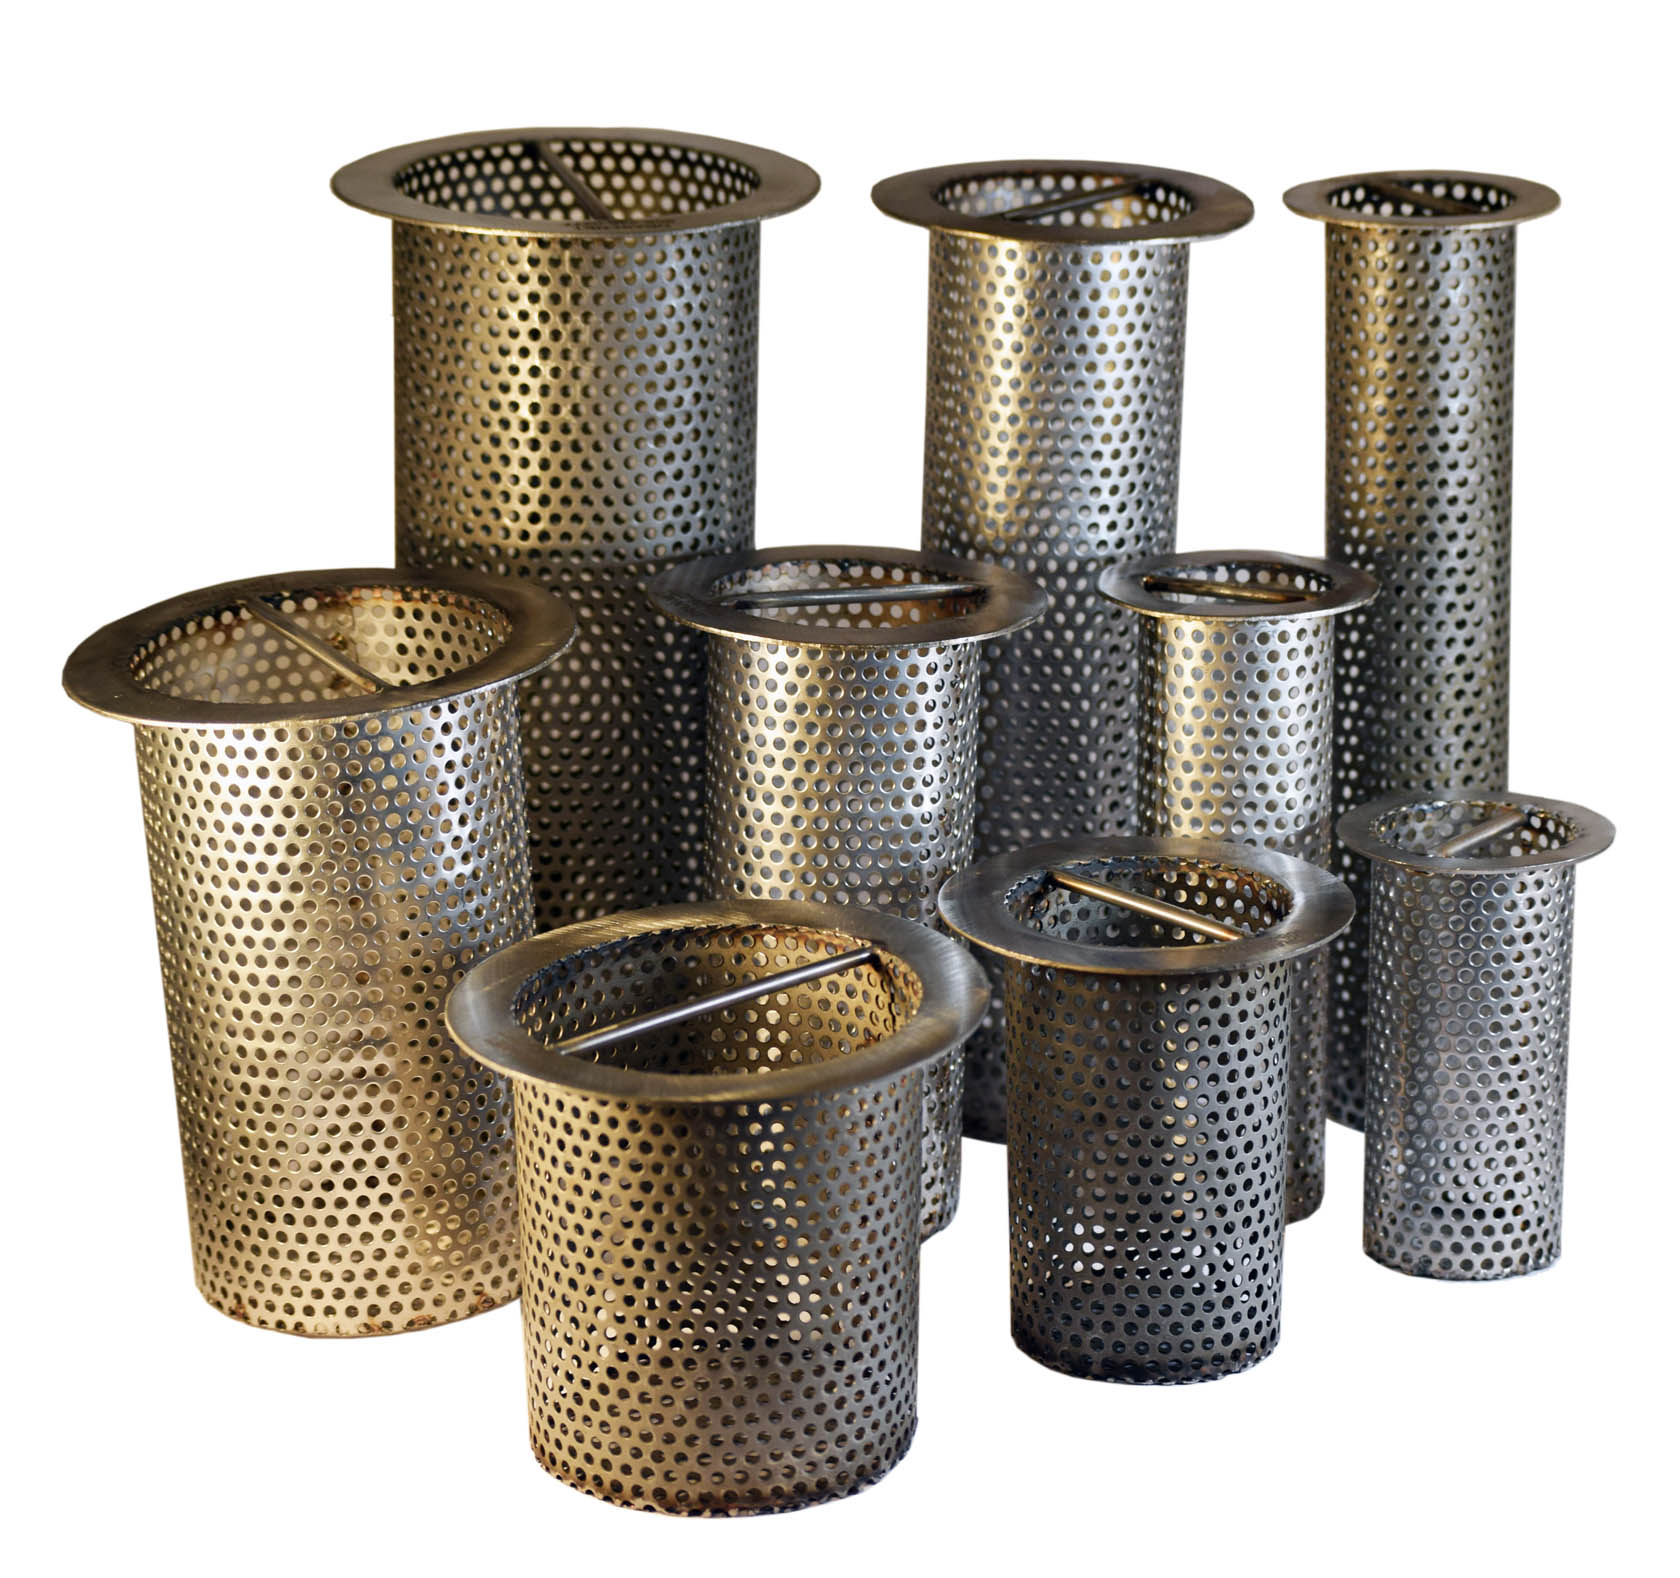 Perforated Stainless Steel floor drain strainers